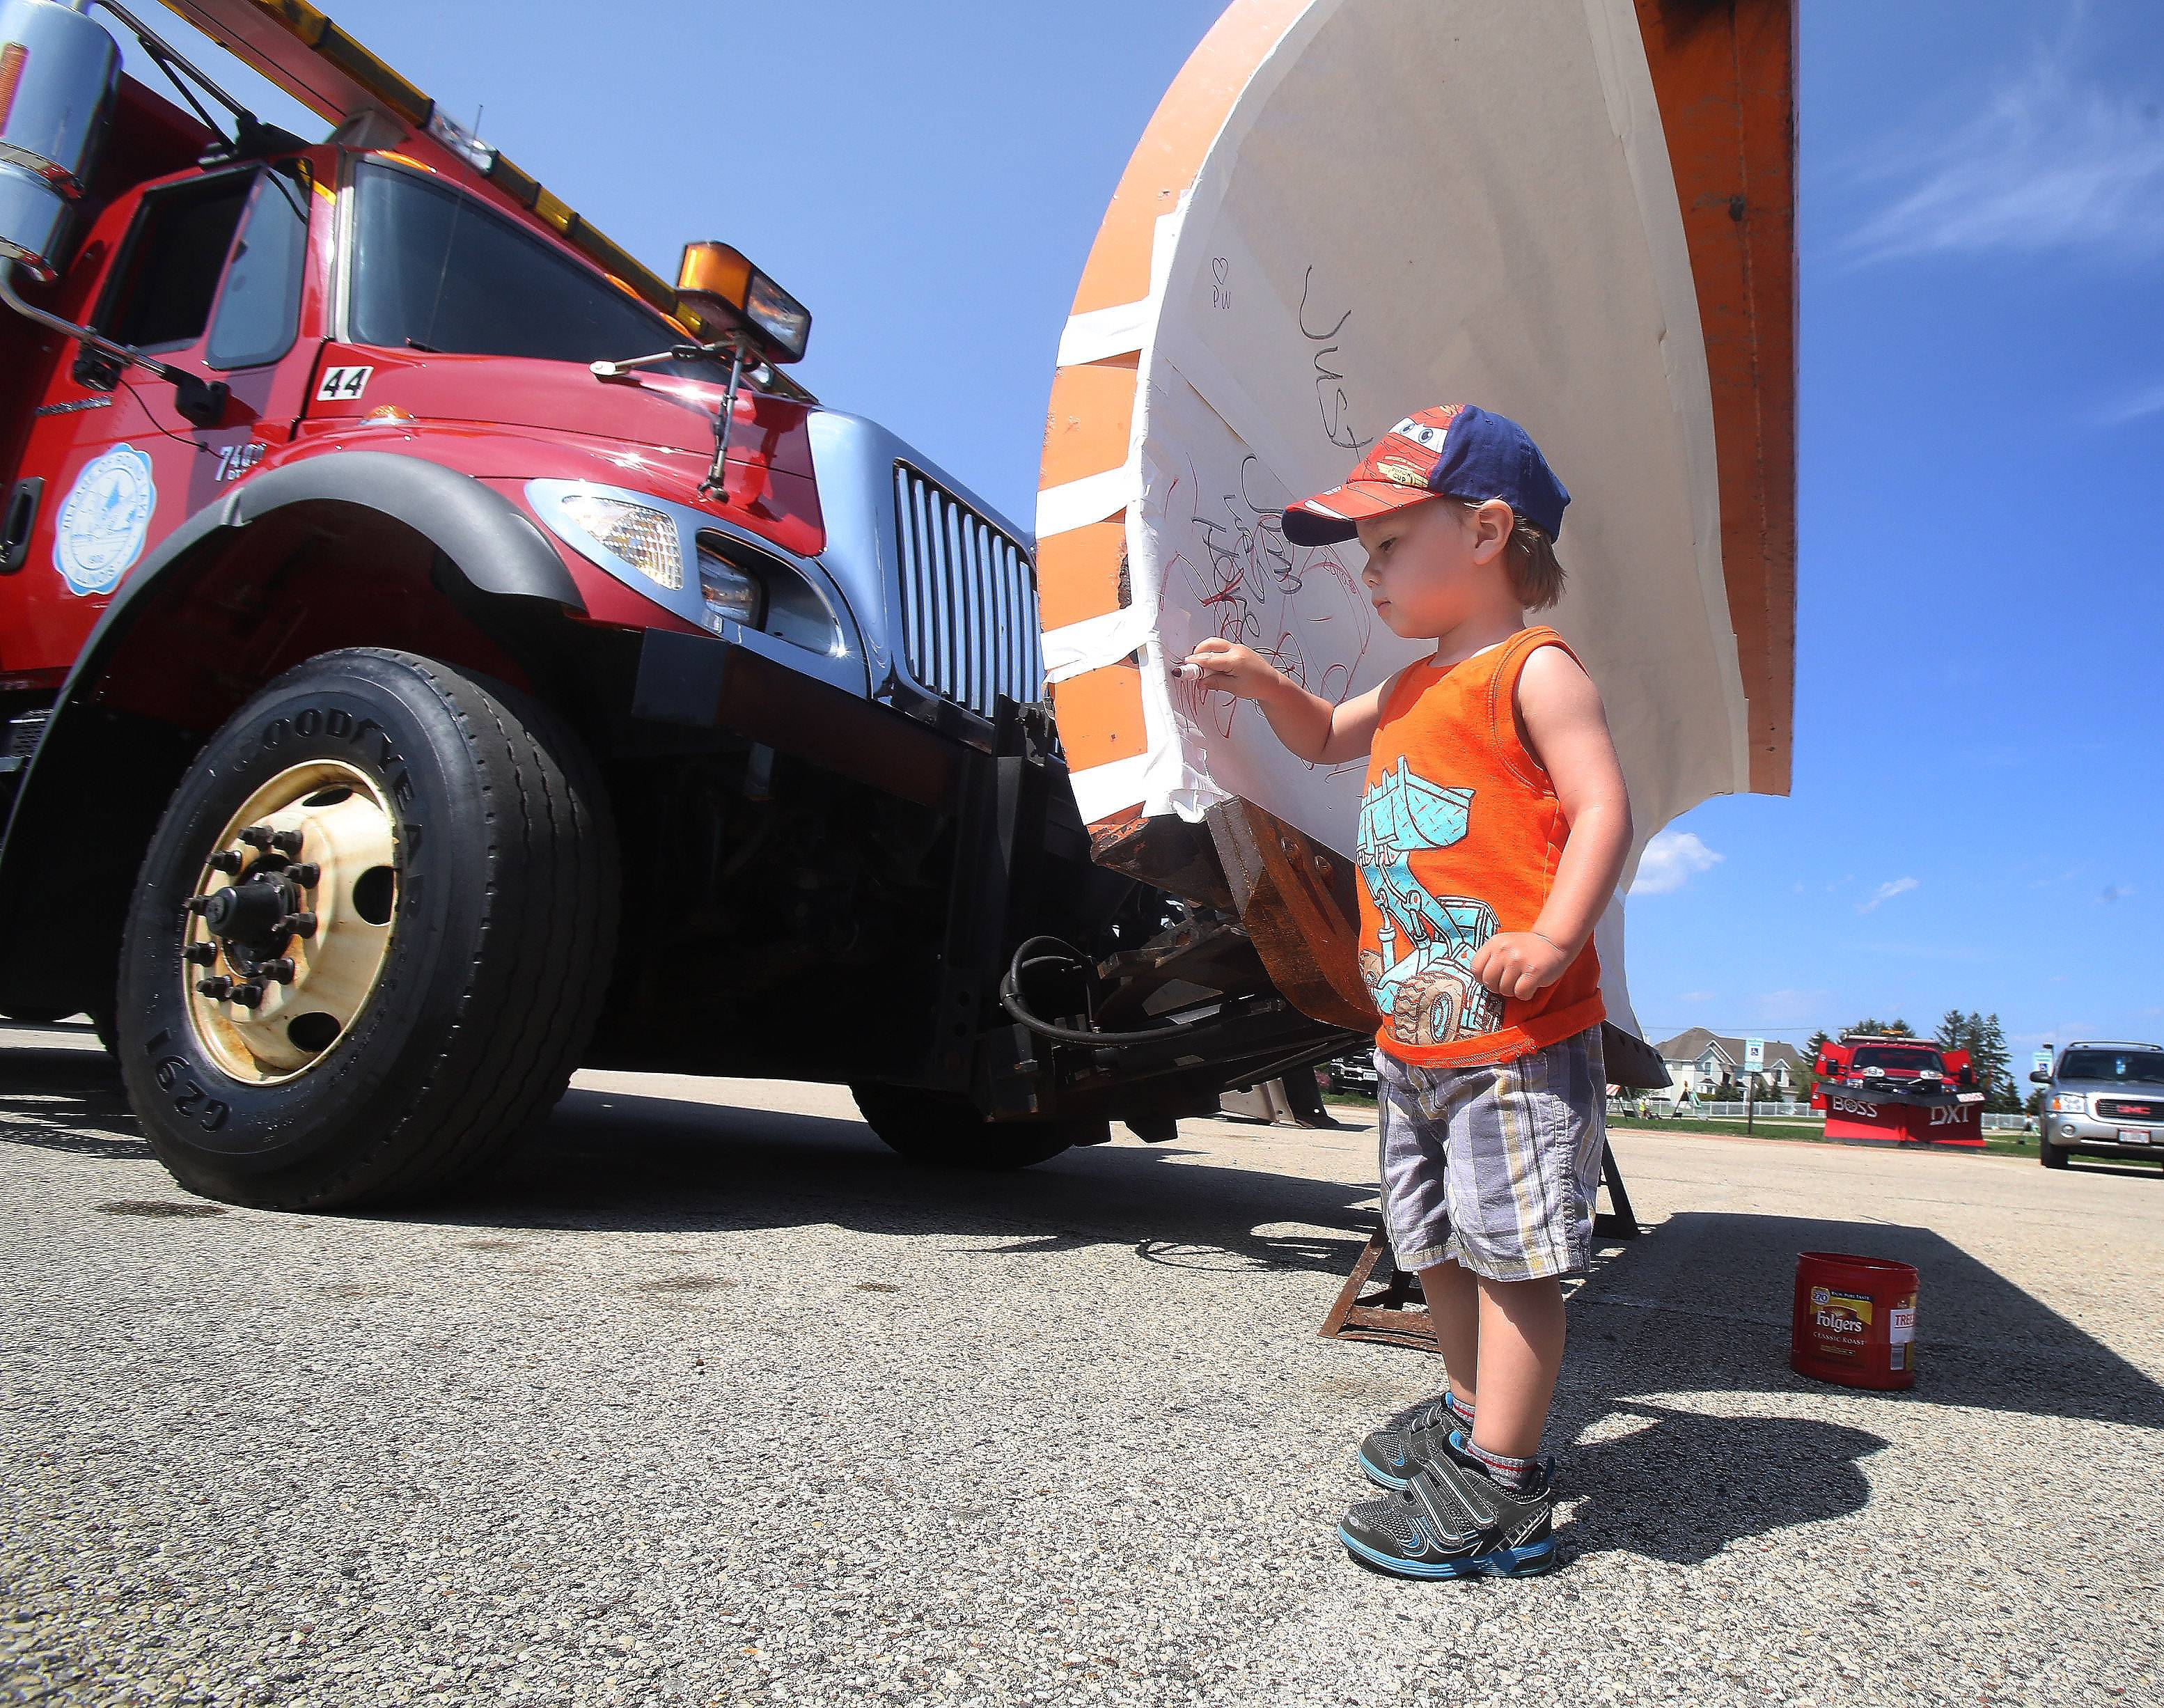 Two-year-old Gabriel Nieto, of Round Lake, draws on a snow plow during the first Round Lake Public Works Open House Wednesday. The event featured vehicles from the public works department, the Round Lake Police Department, the Round Lake Area Fire Protection District, and the Lake County Public Works and Lake County Transportation.